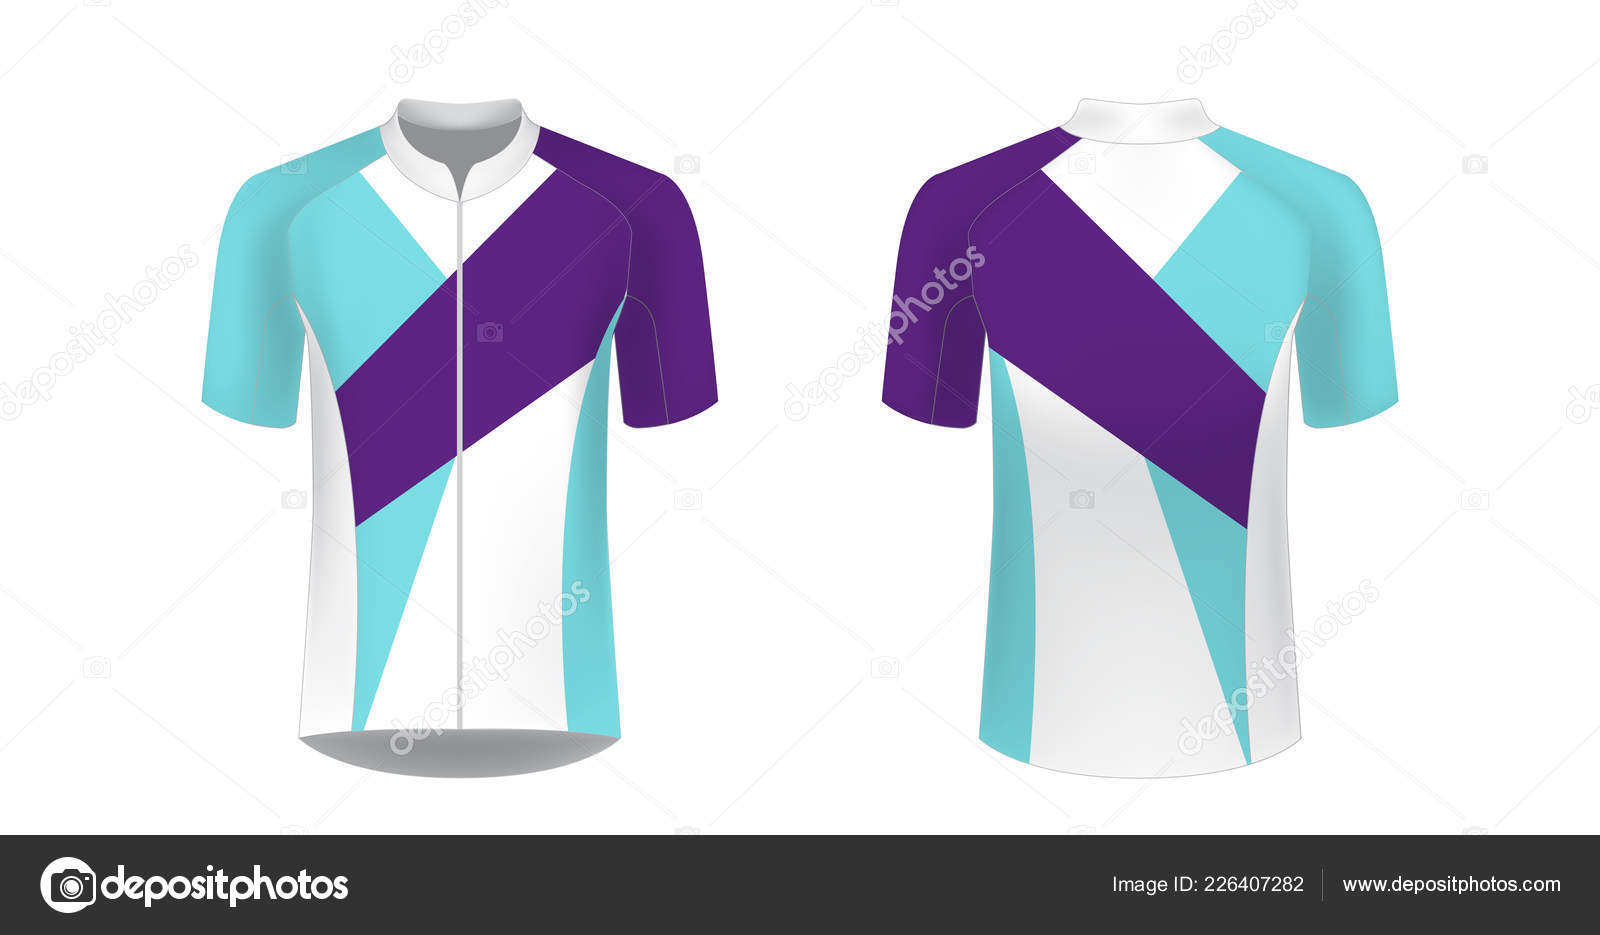 ef6775d99 Cycling Jersey vector mockup. T-shirt sport design template. Sublimation  printing for sportswear. Apparel blank for triathlon